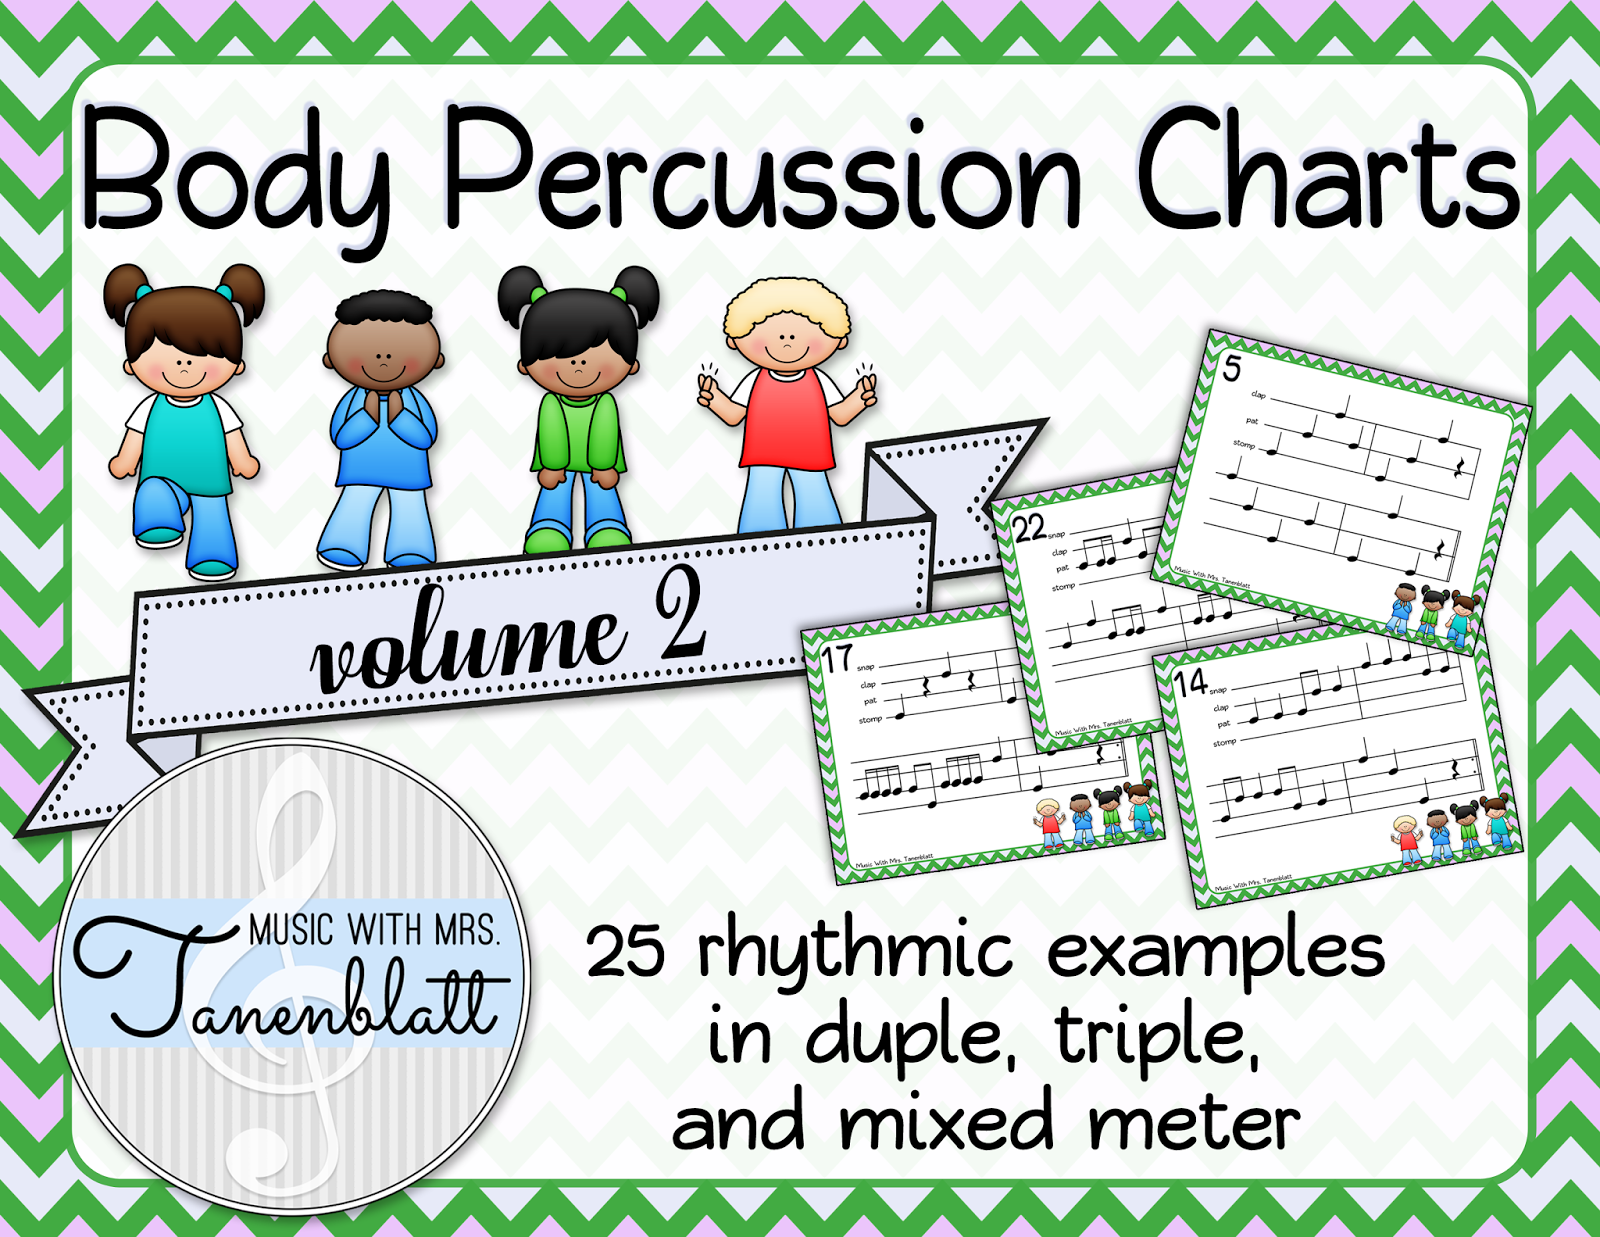 percussion assignment chart If this exercise helps you, please purchase our apps to support our site.